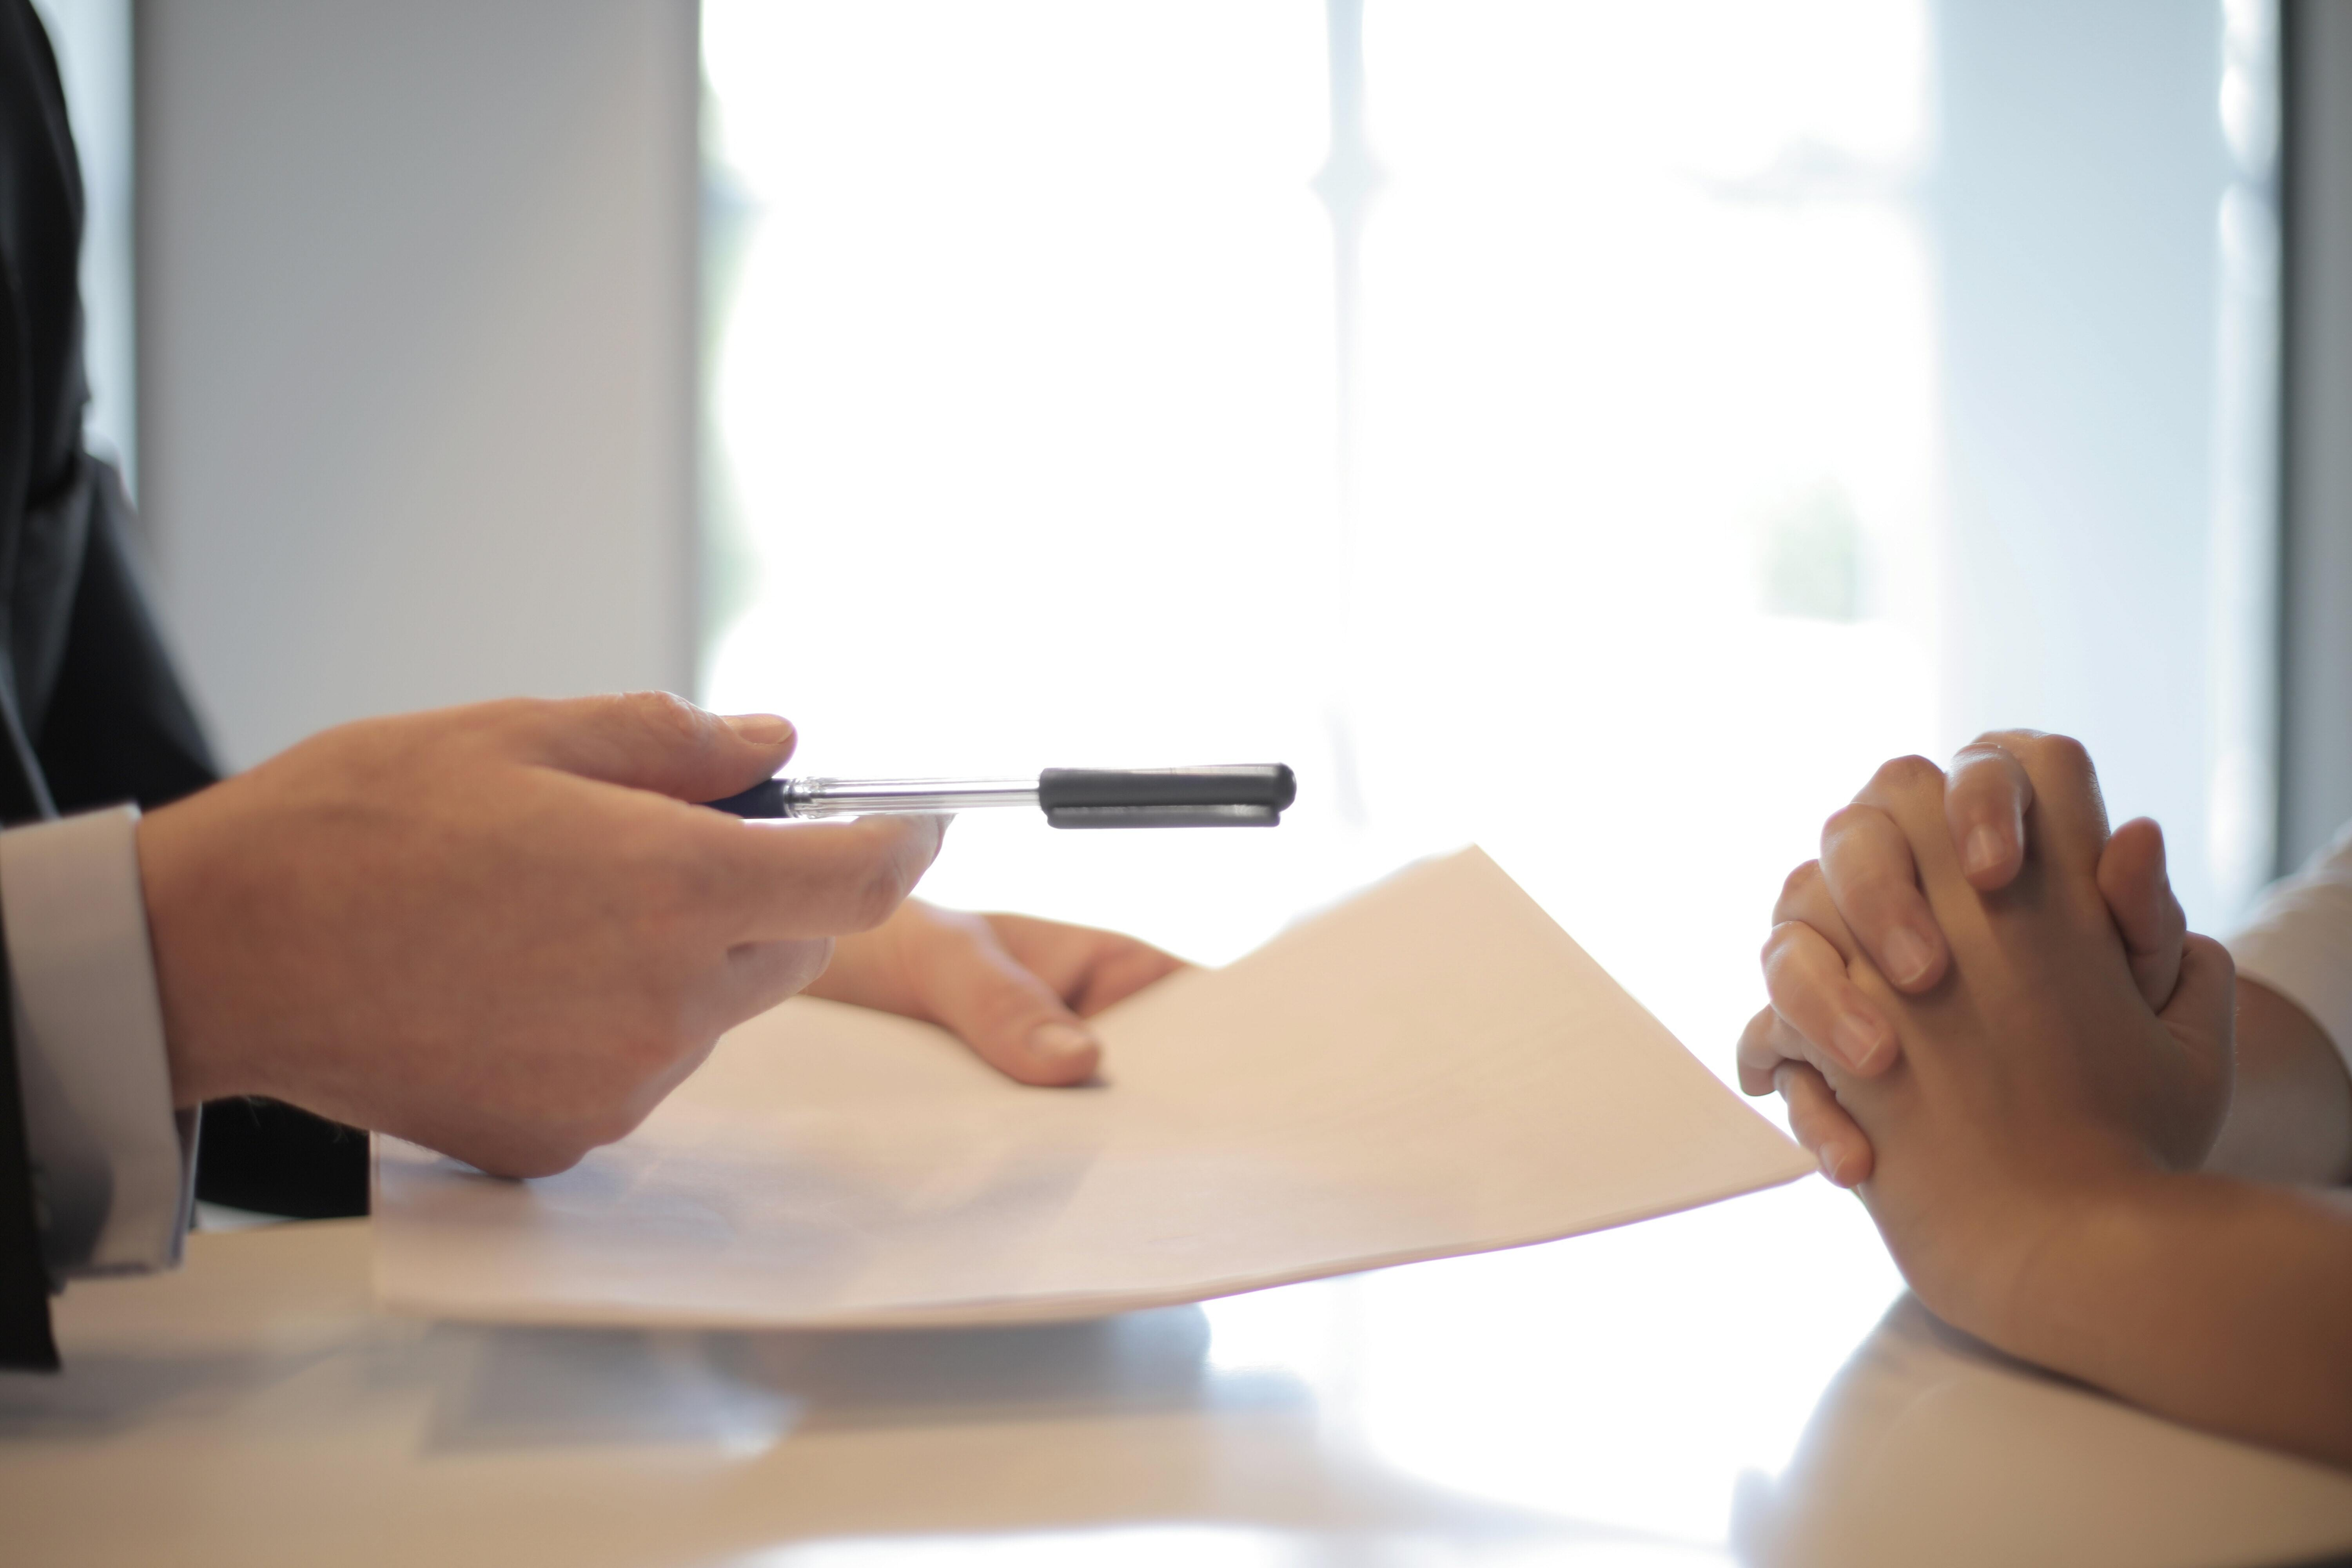 Two people's hands are pictured, sitting on either side of a table, with one person handing the other forms and a pen.